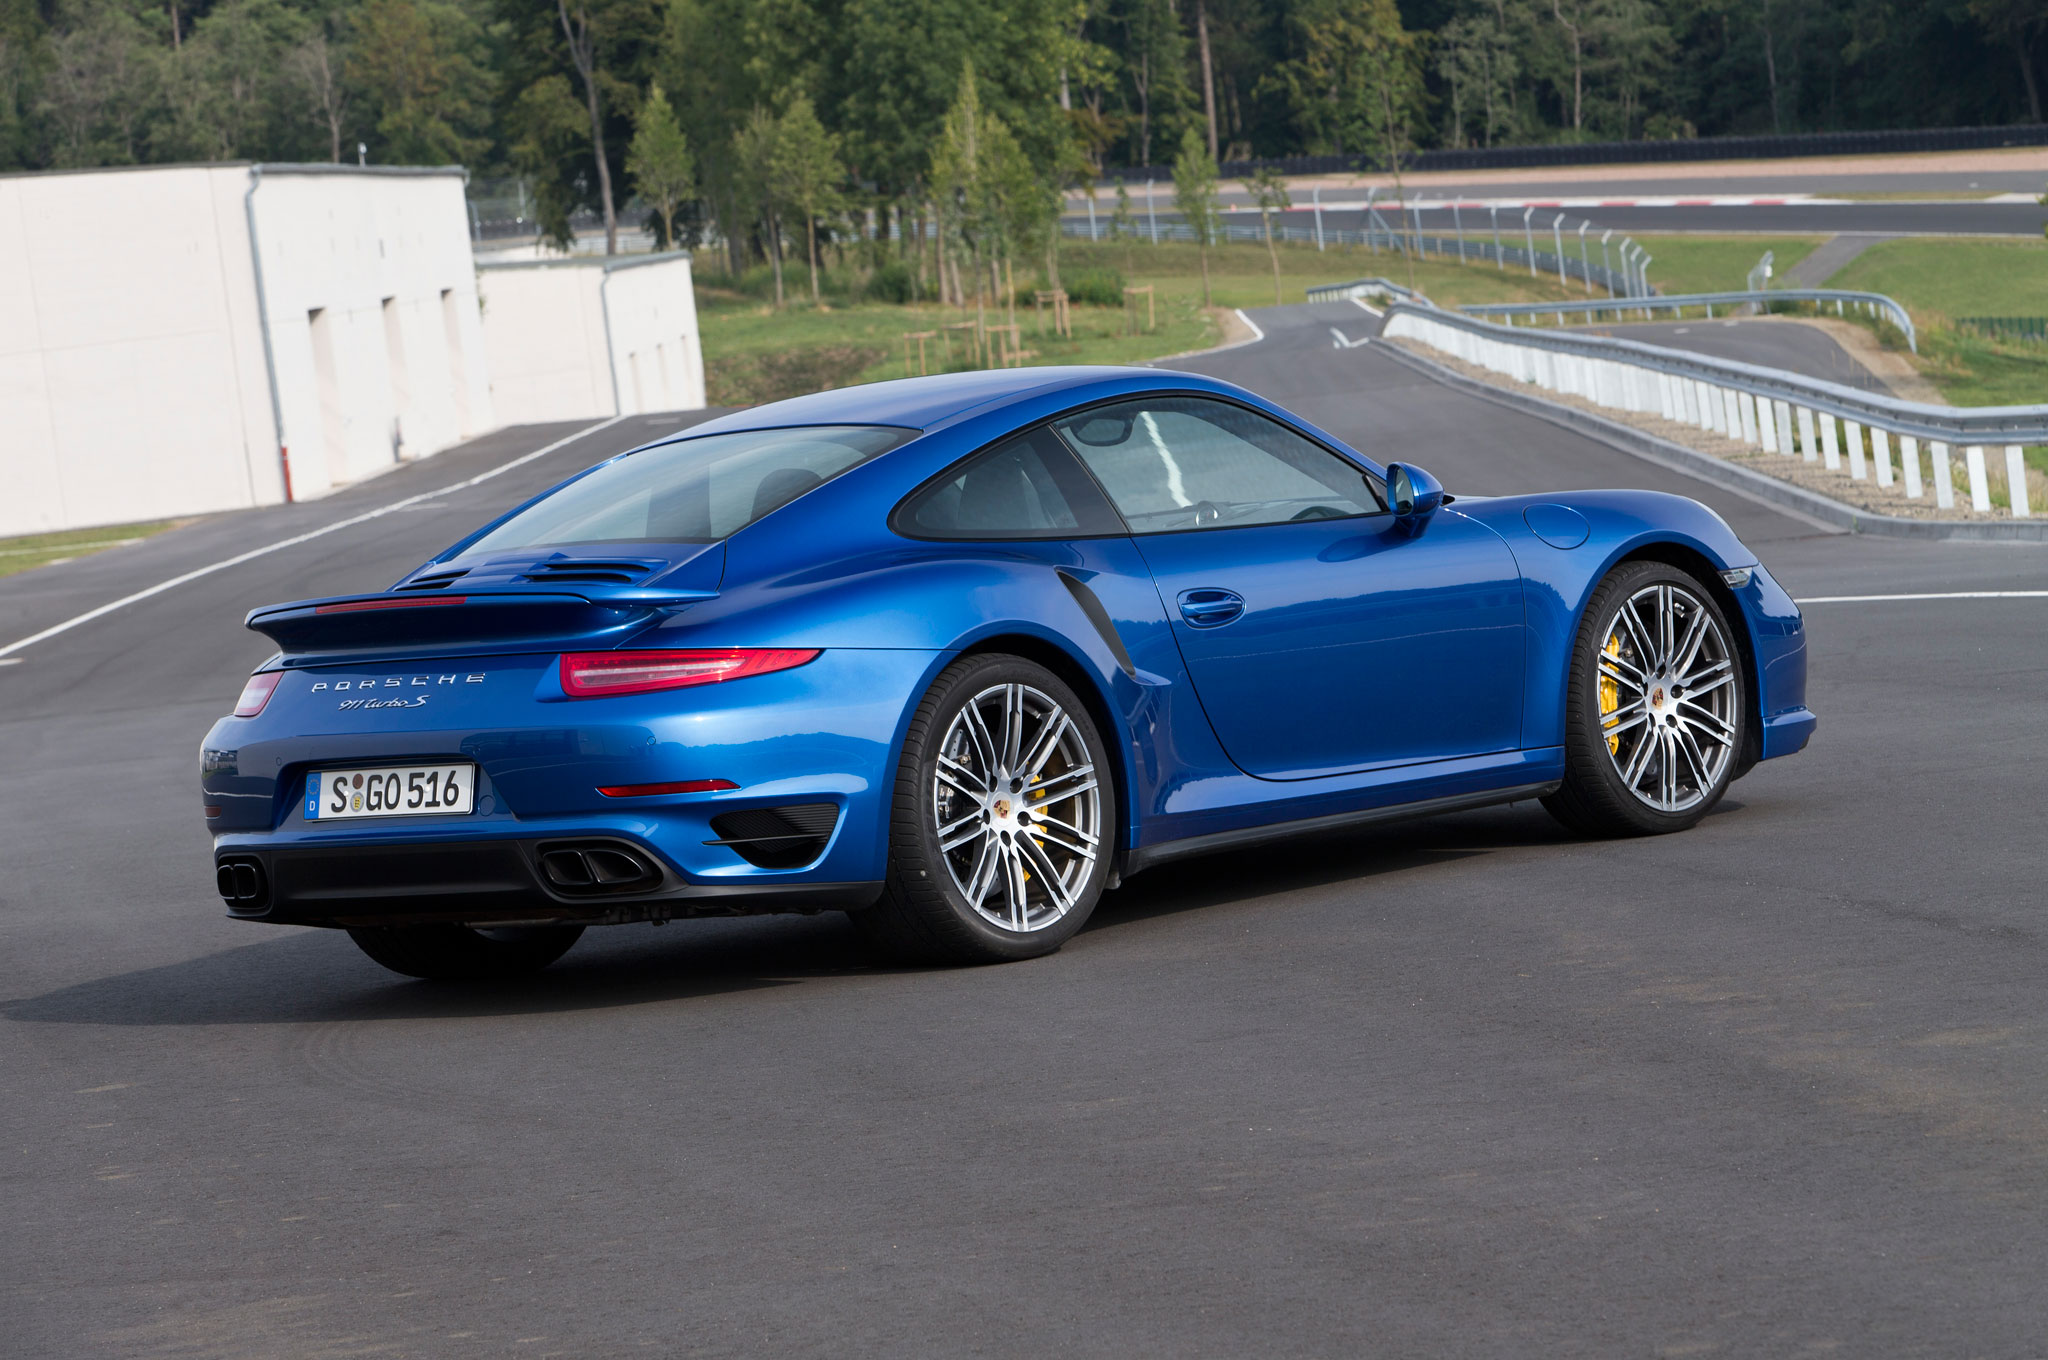 2014 Porsche 911 Turbo S Rear Right Side View 21